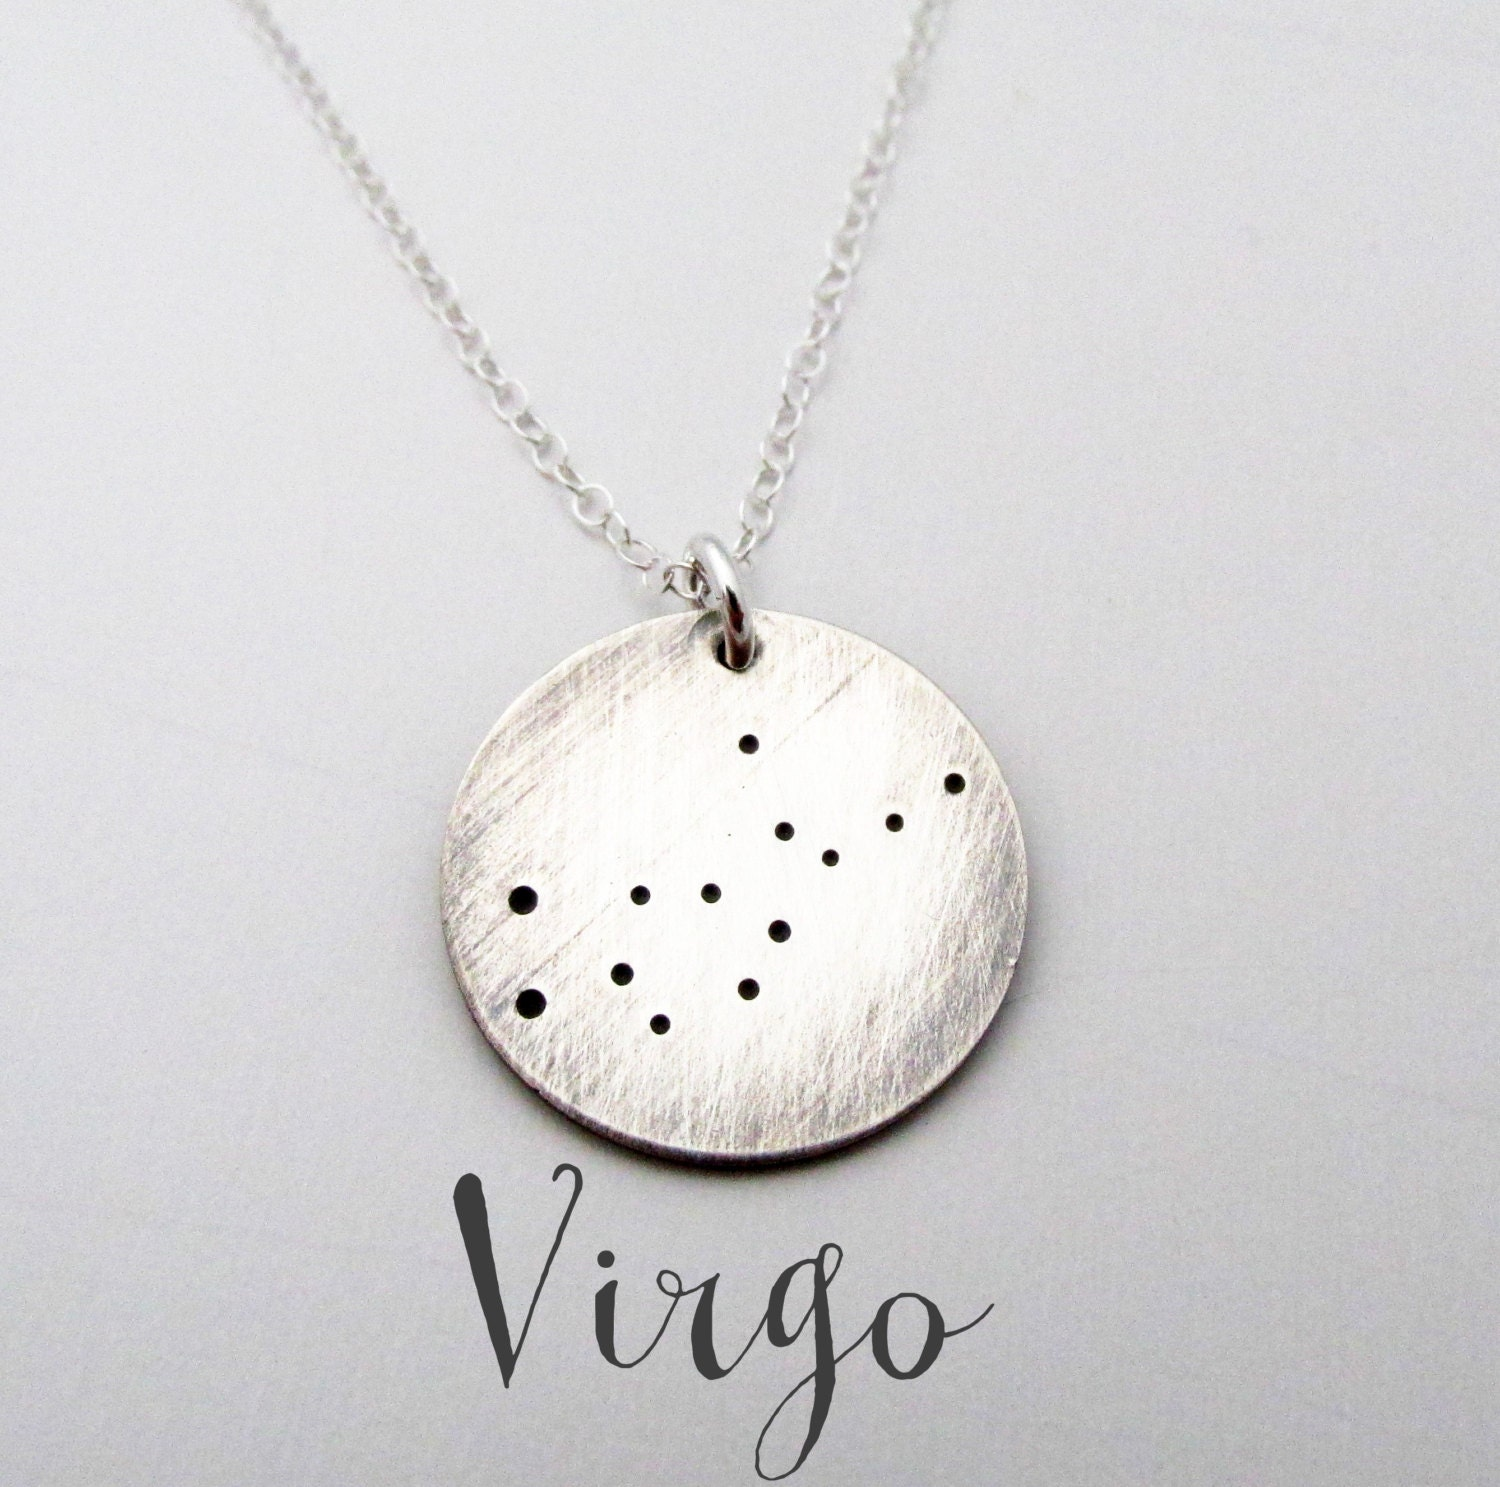 birthstone il jewelry listing nsqp birthday gift virgo fullxfull necklace constellation september gifts zodiac